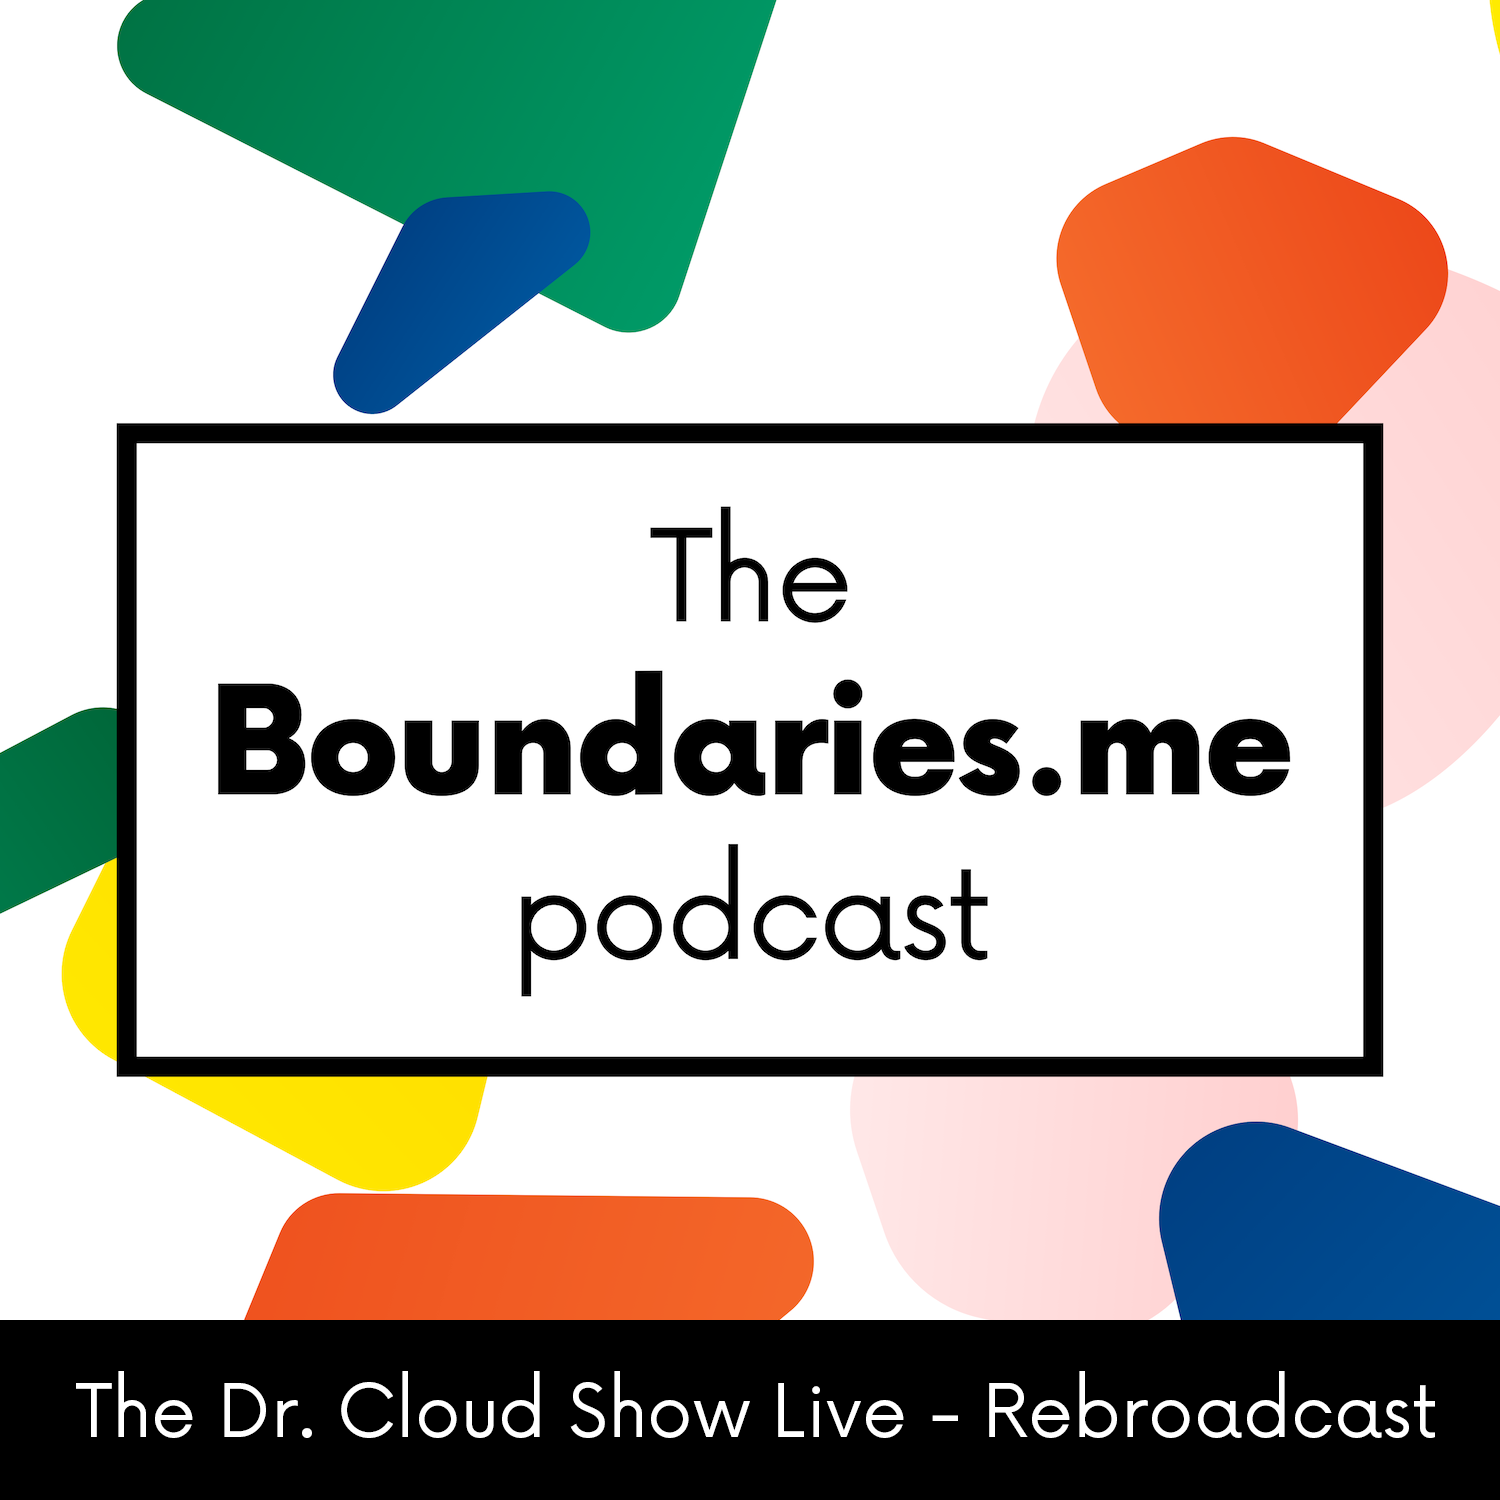 Episode 214 - The Dr. Cloud Show Live - A Good Life is Contagious - 4-9-2021